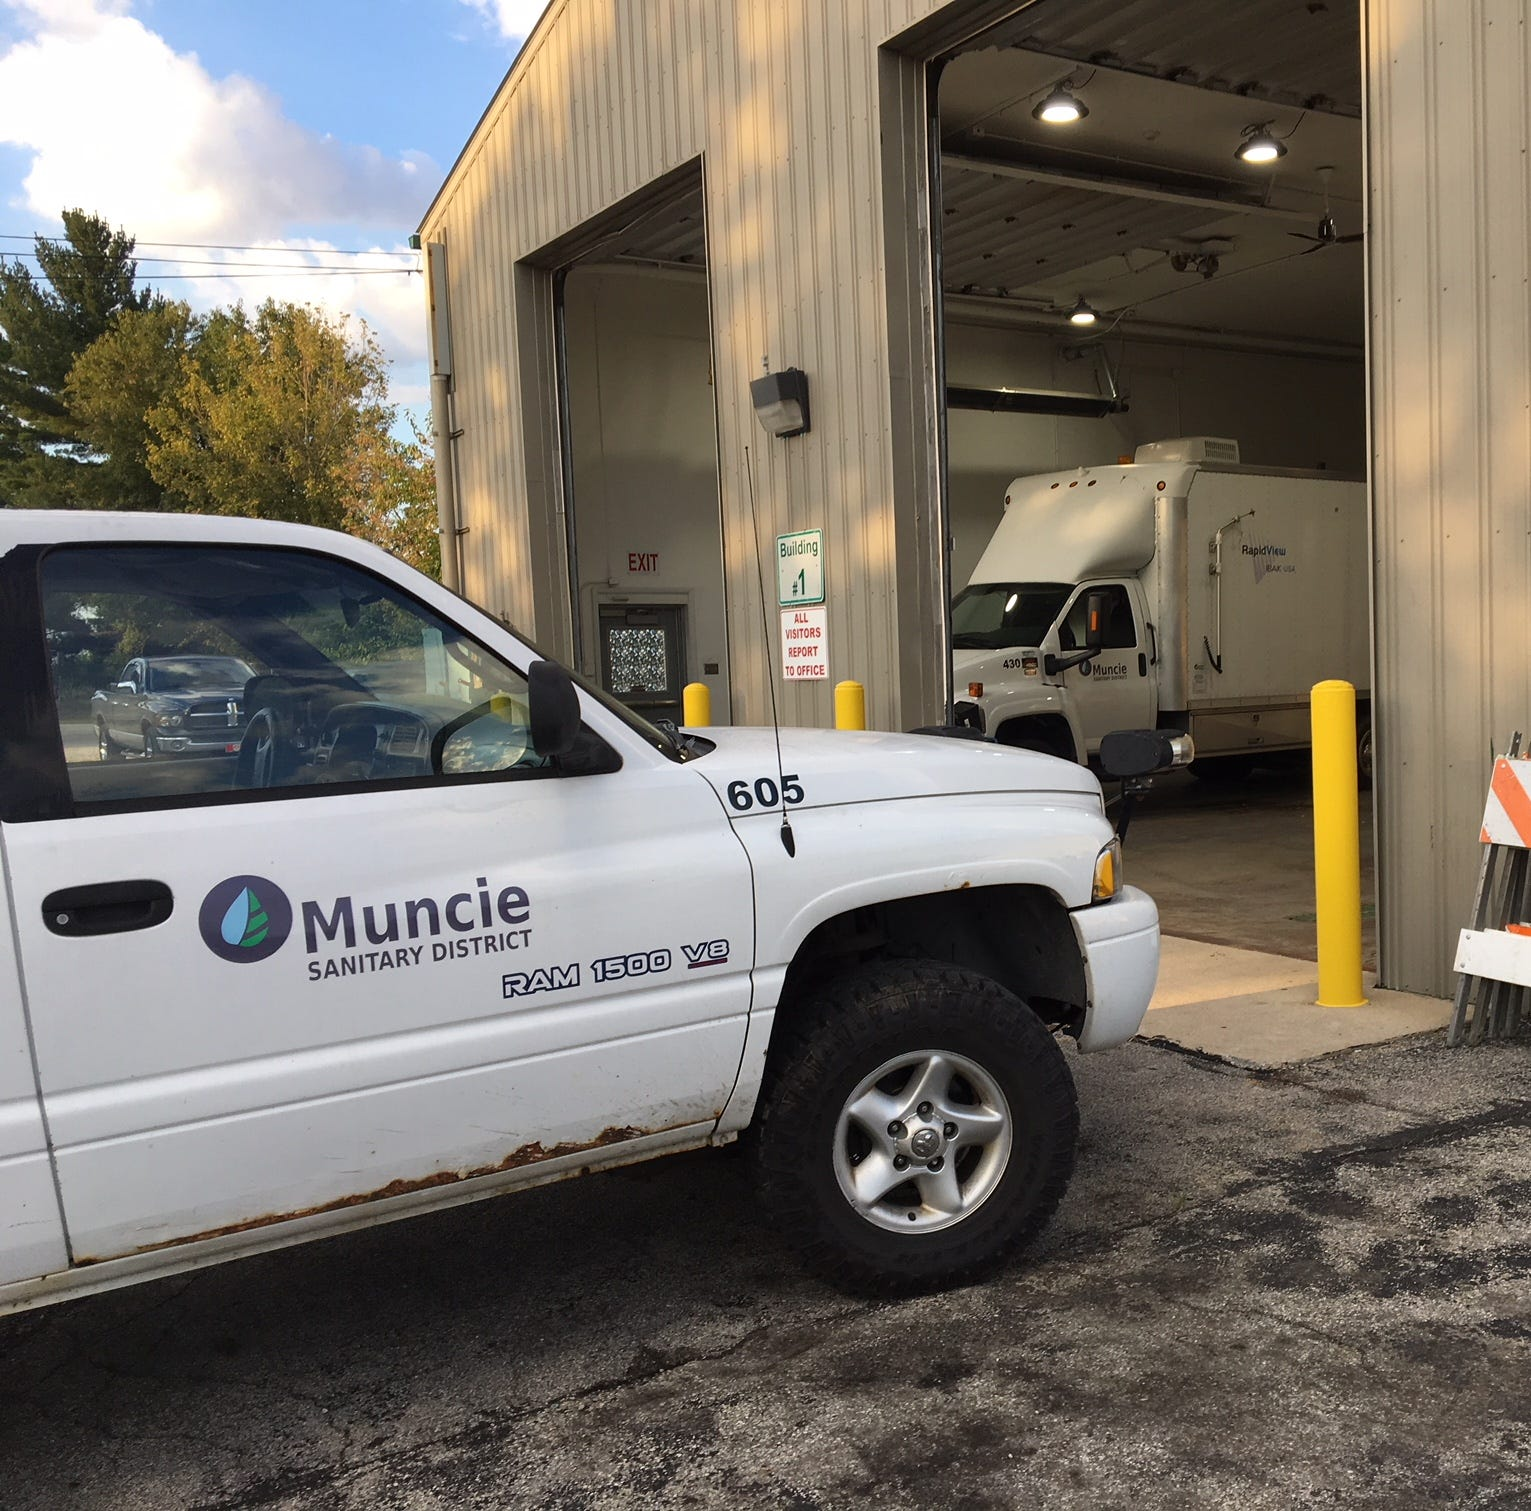 Barn and vehicles at the Muncie Sanitary District engineering offices.